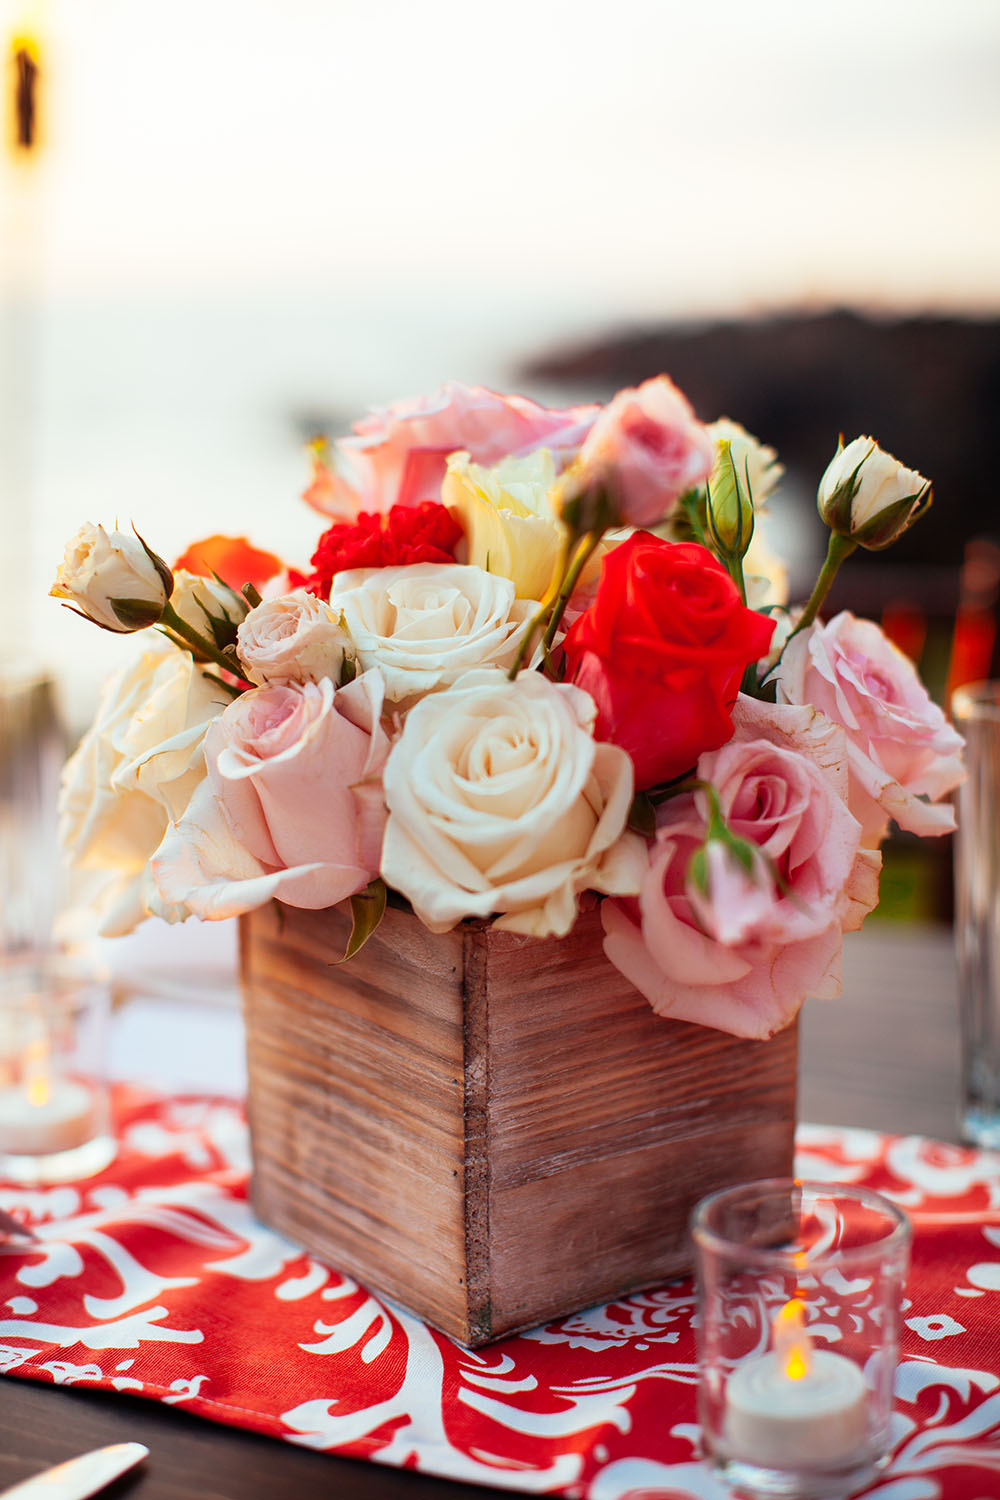 Pink and red wedding florals by Bliss Wedding Design - Dmitri and Sandra Photography